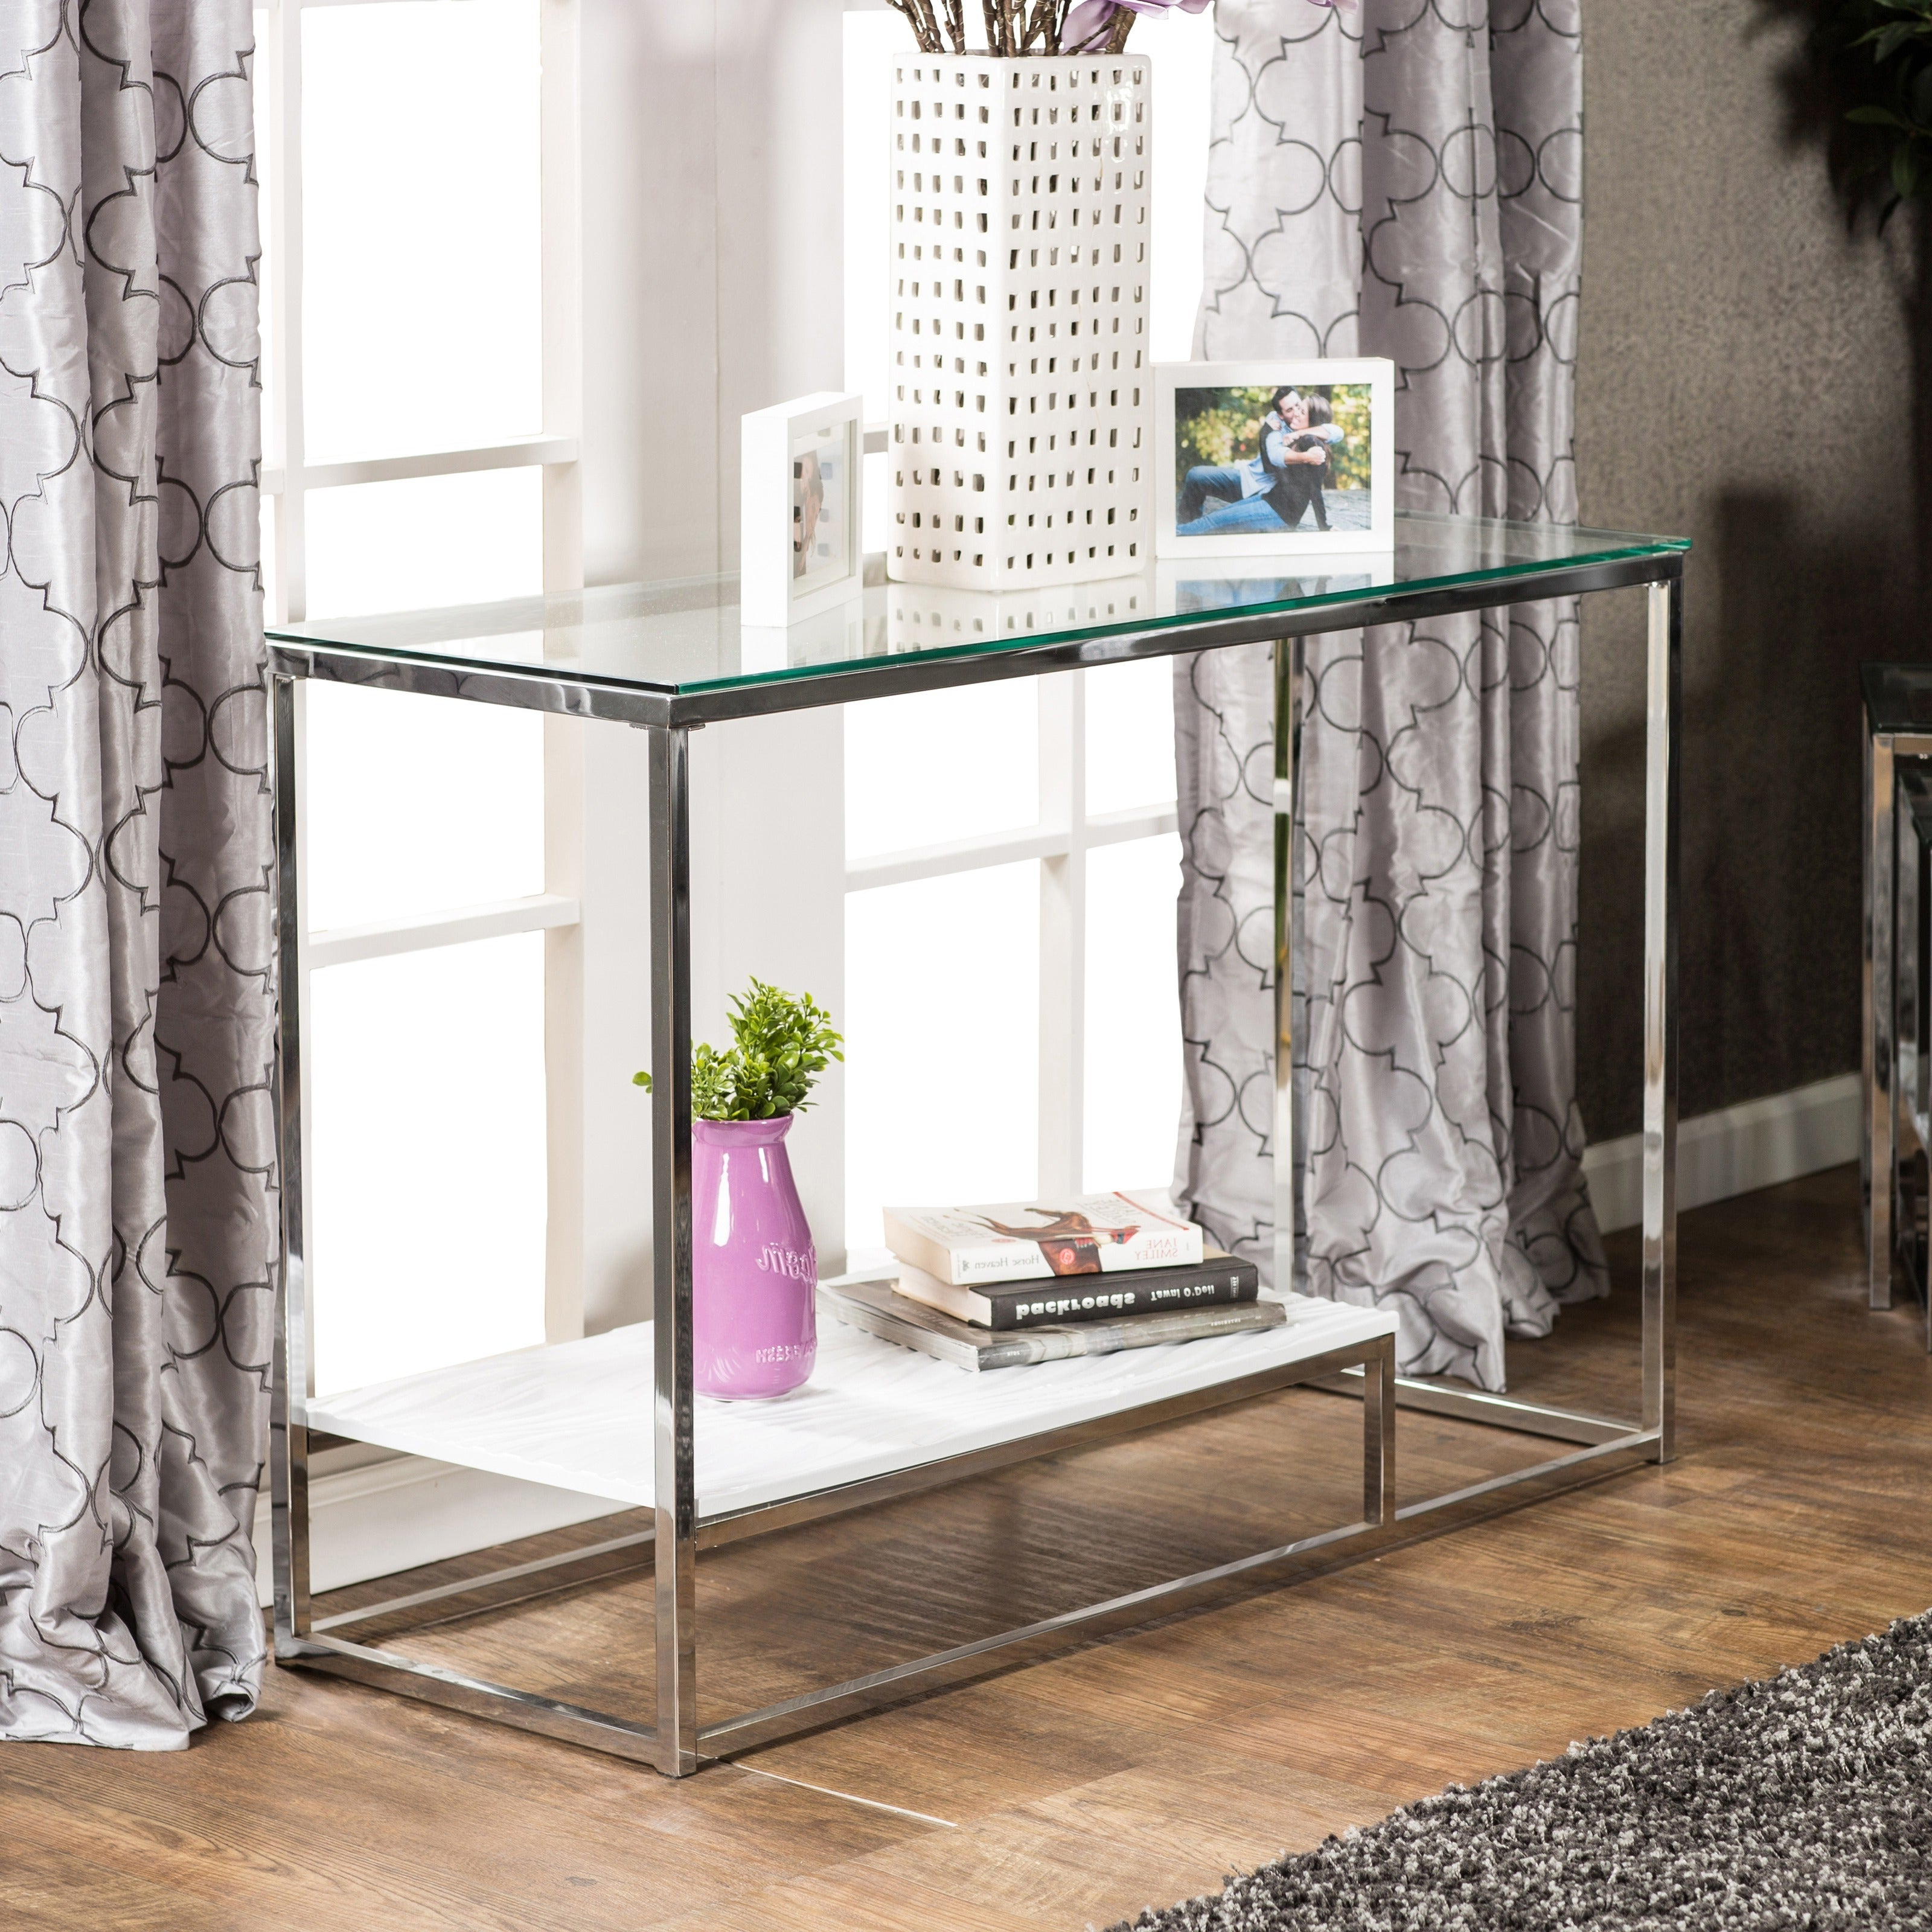 Strick & Bolton Florence Chrome Sofa Table Regarding Favorite Strick & Bolton Florence Chrome Coffee Tables (View 7 of 20)